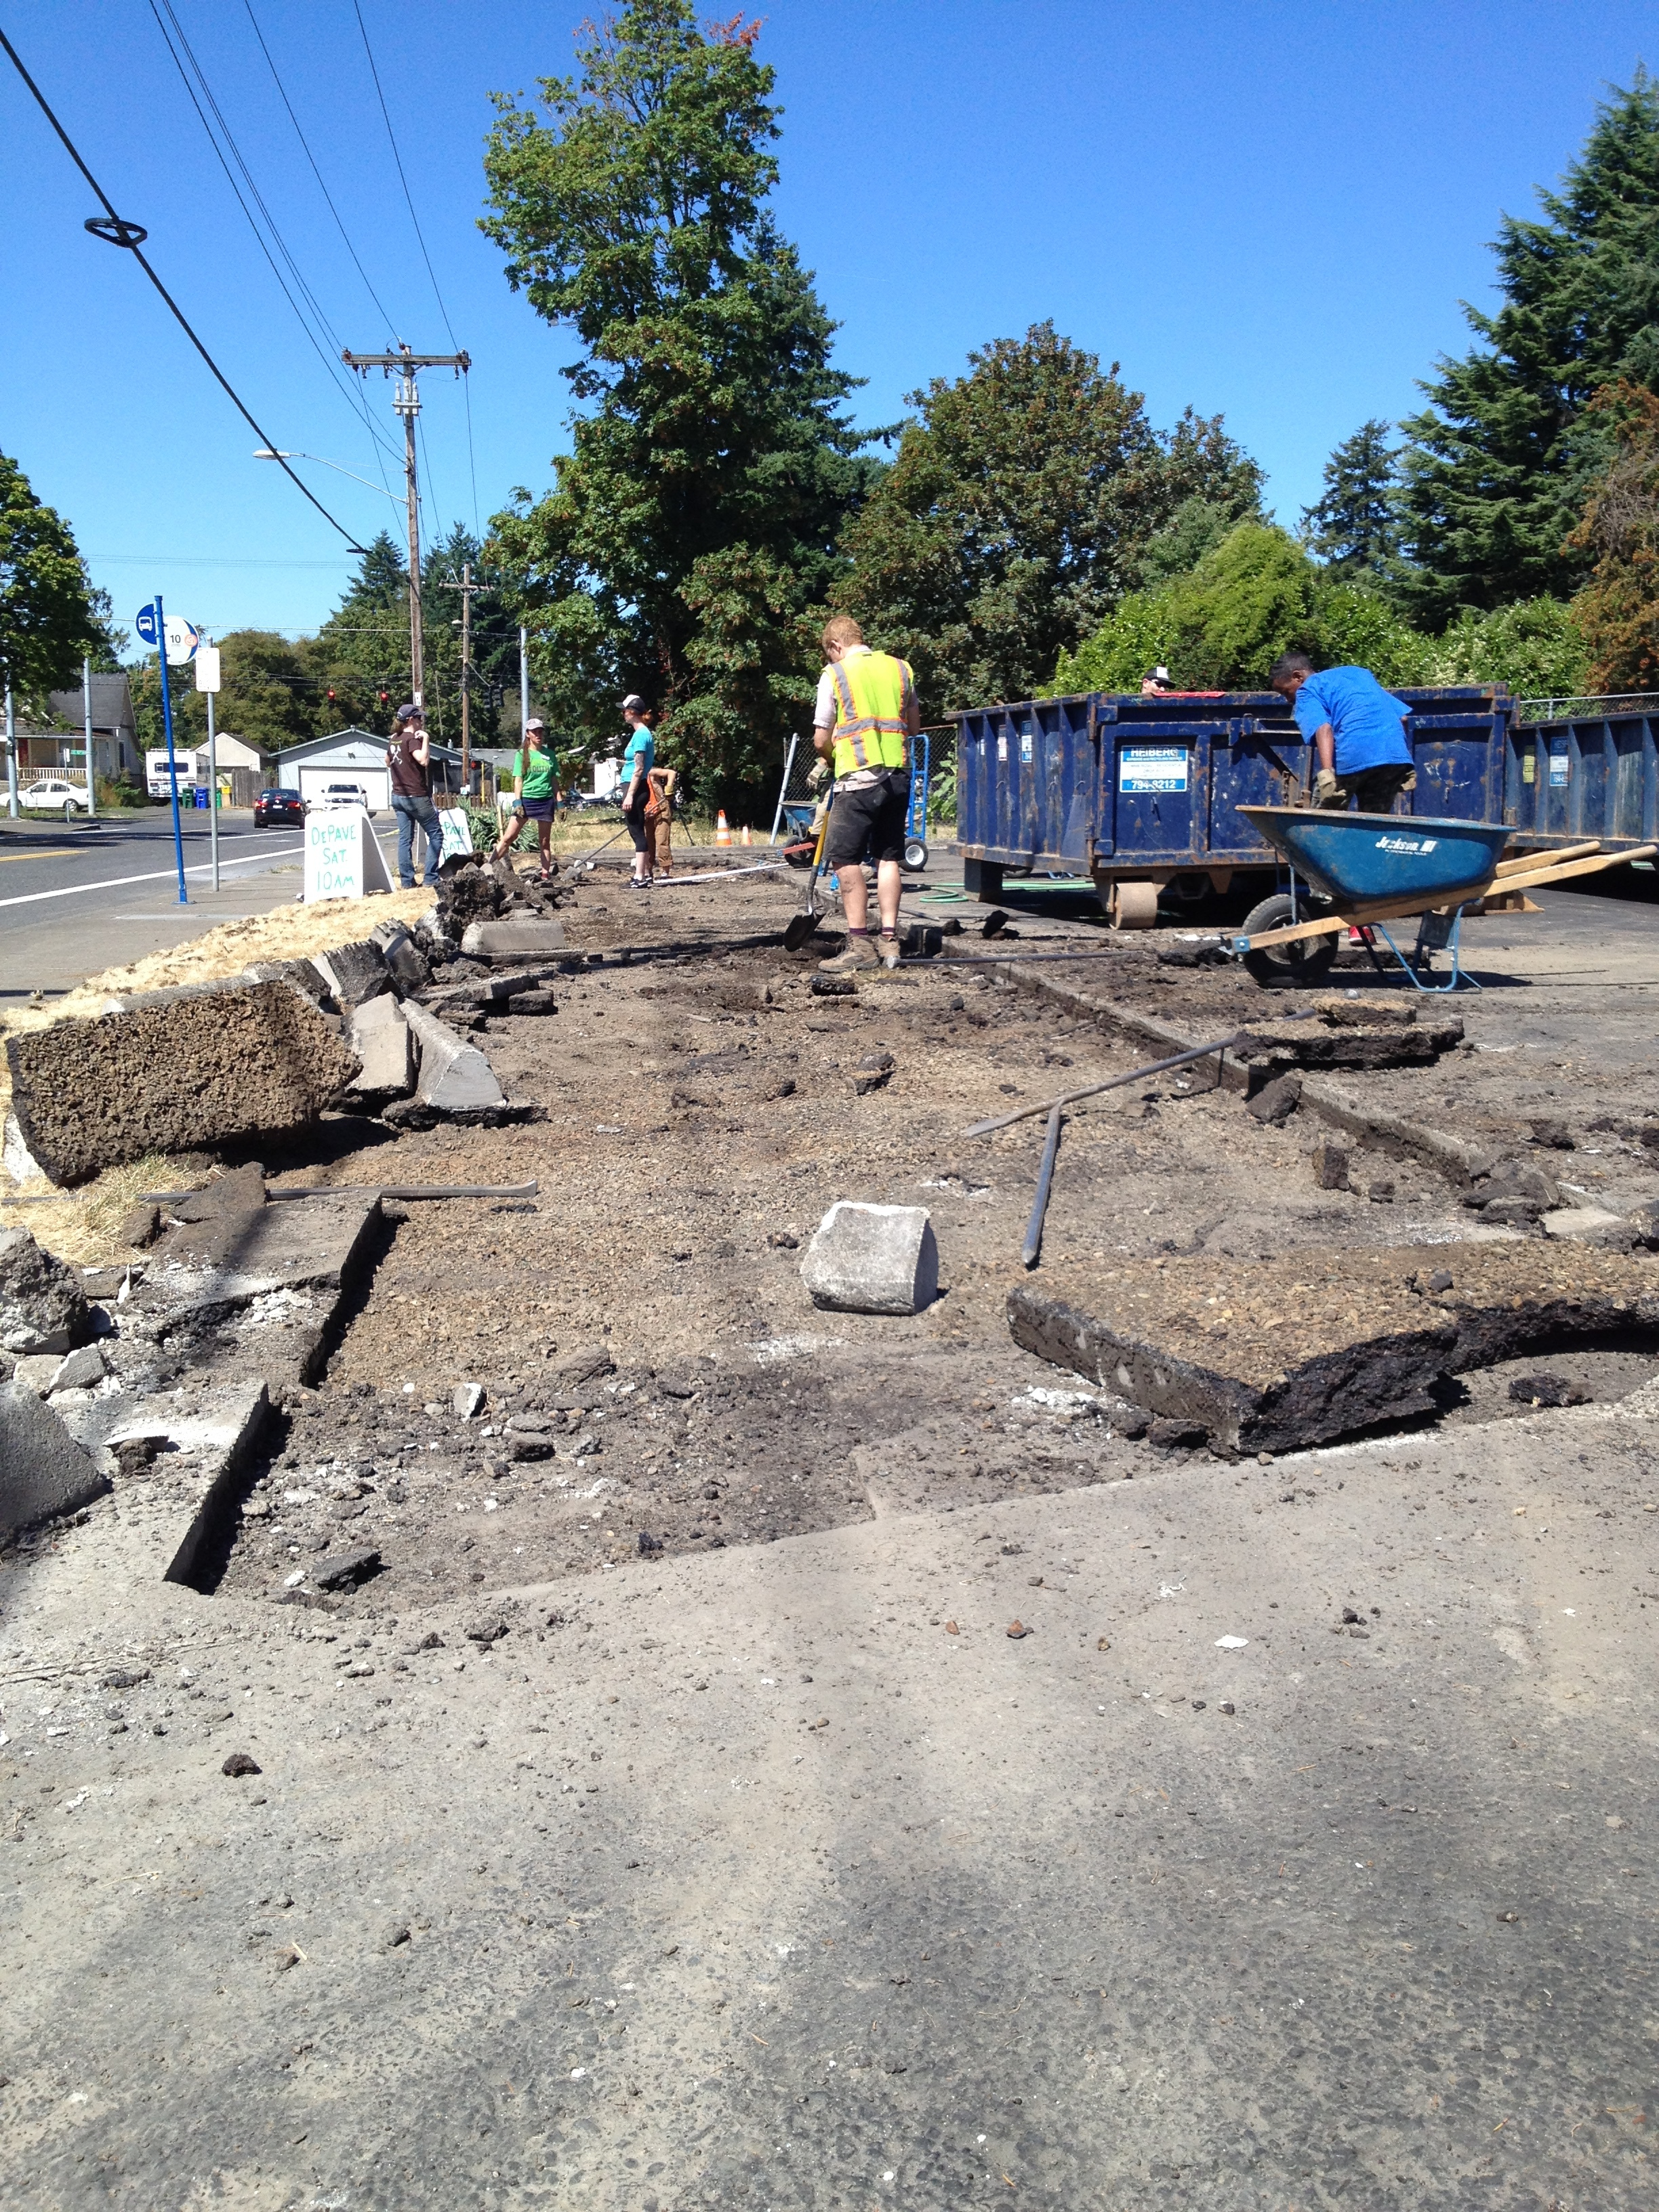 Green Lents & ROSE CDC partner with DePave to remove concrete, revealing compacted and degraded urban soil.